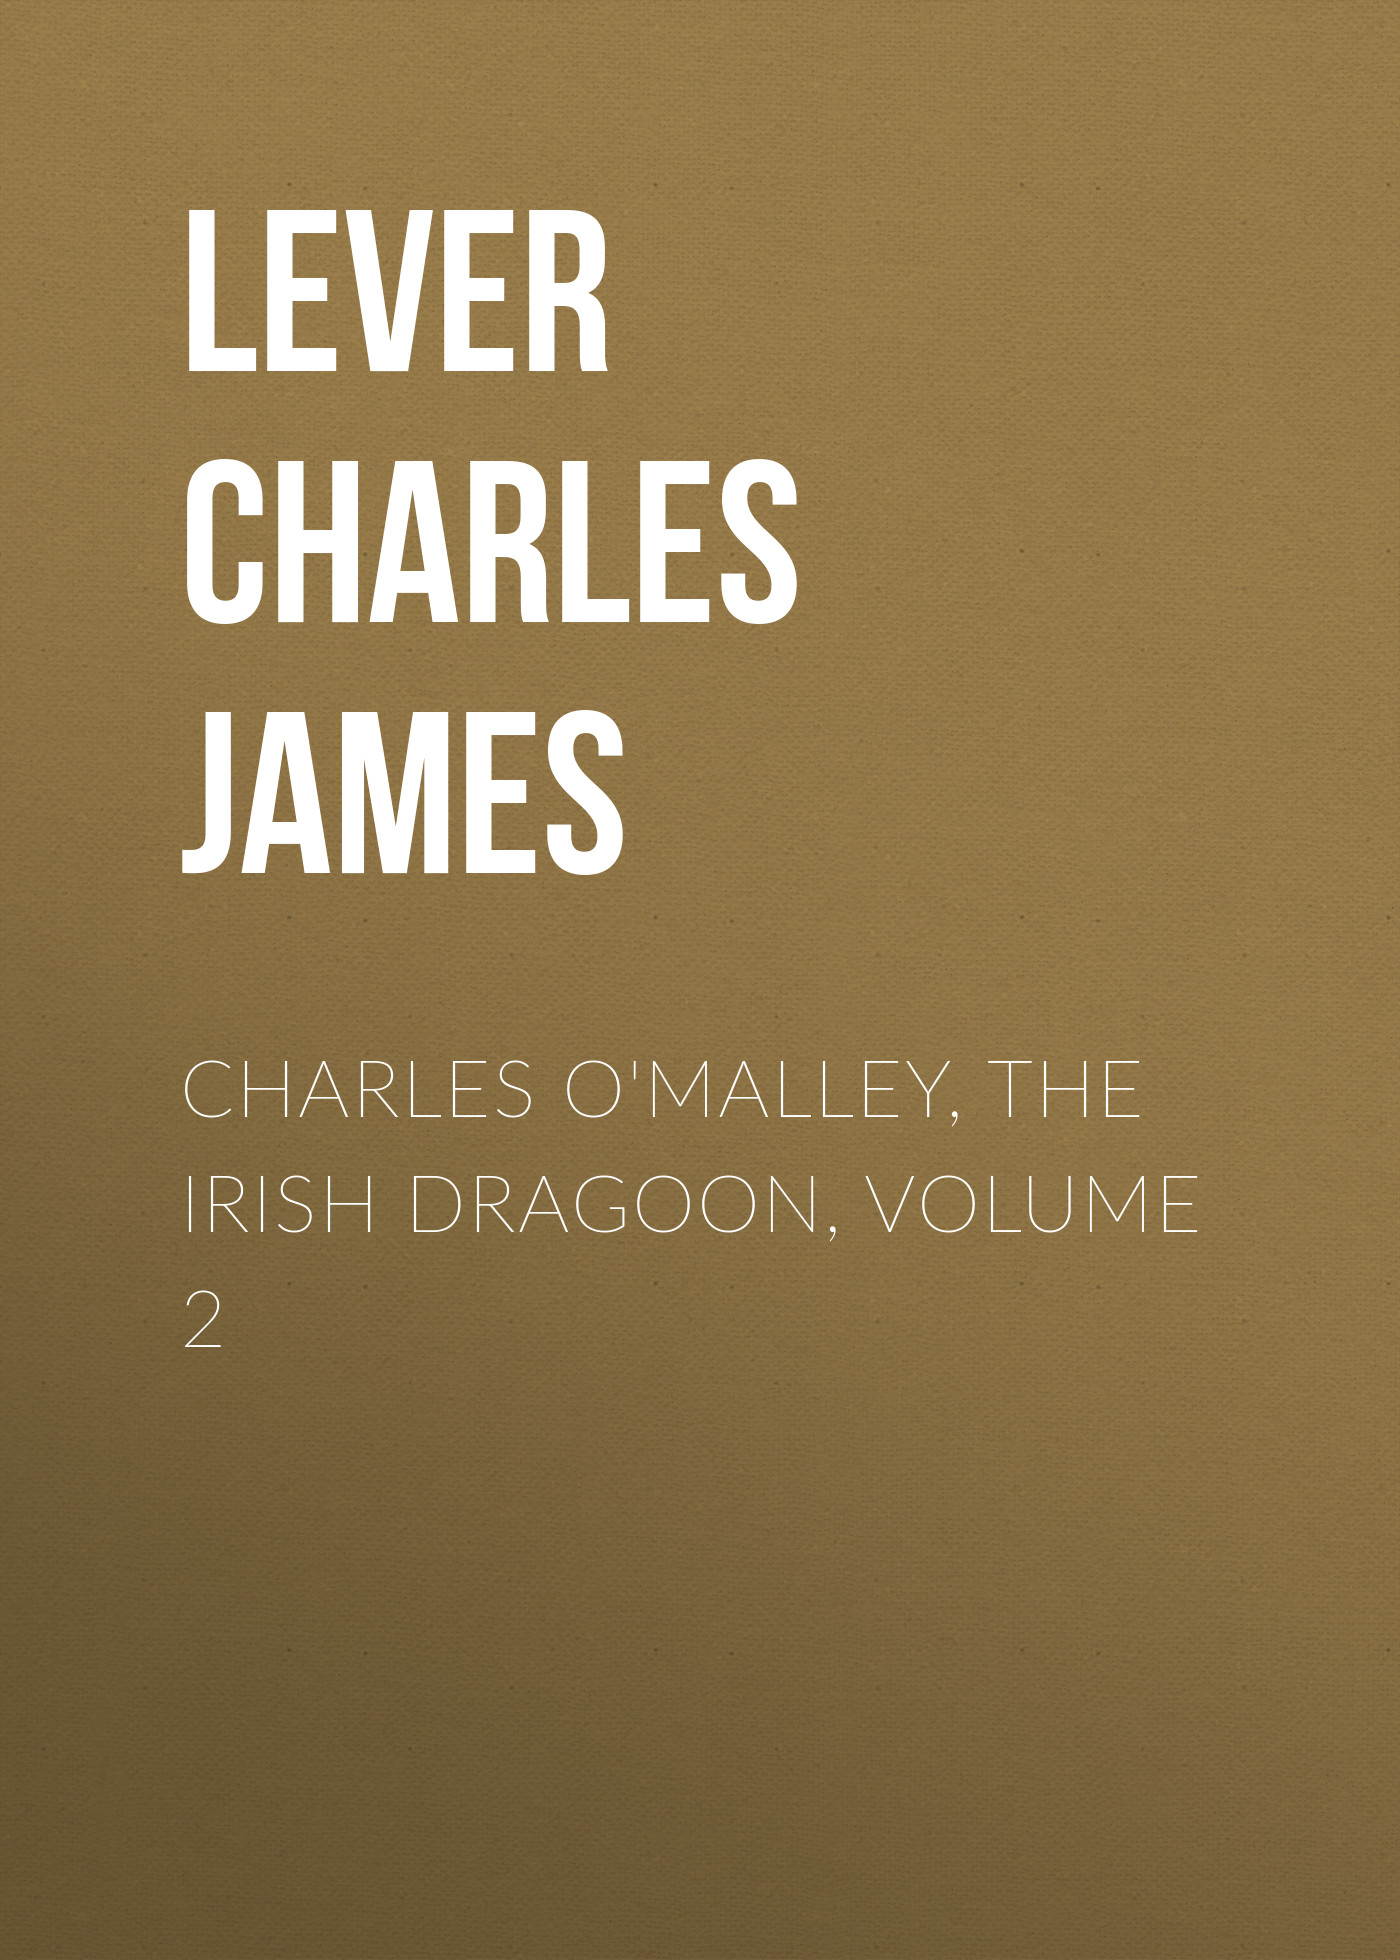 Lever Charles James Charles O'Malley, The Irish Dragoon, Volume 2 цена и фото